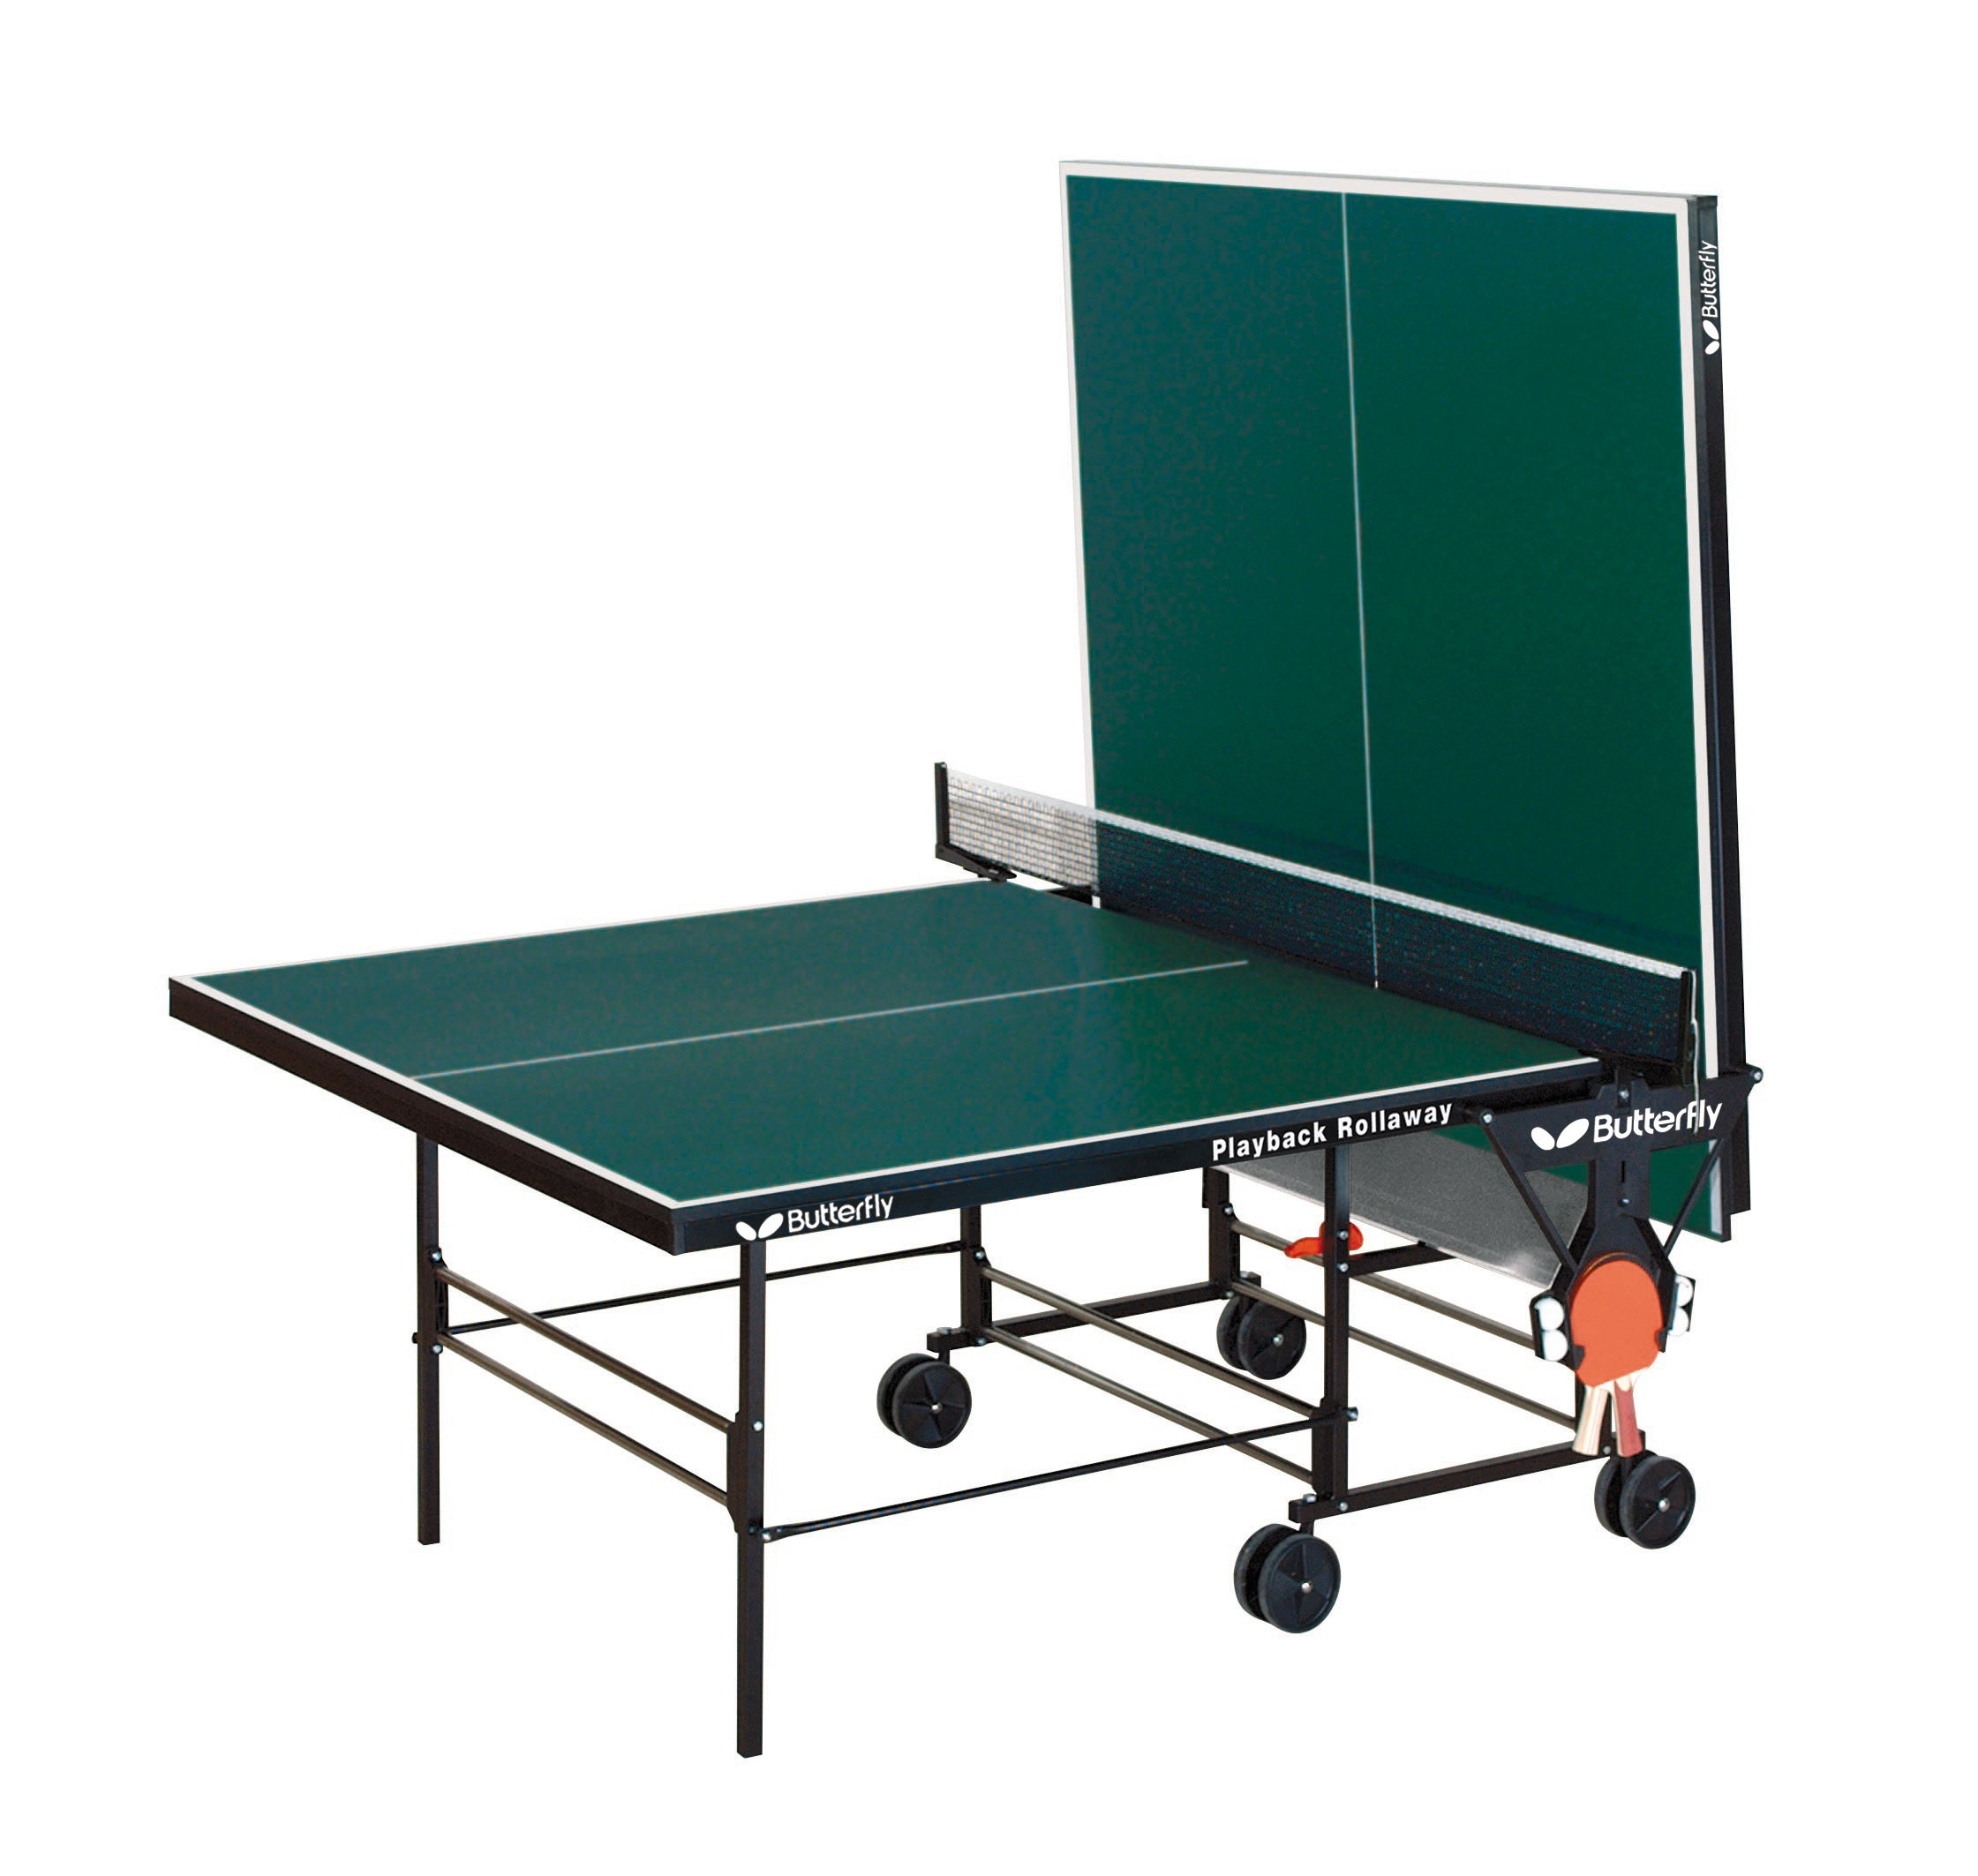 Butterfly Playback 19 Table Tennis Table - 3 Year Warranty - USATT Approved - 3/4'' Top - Fold and Roll